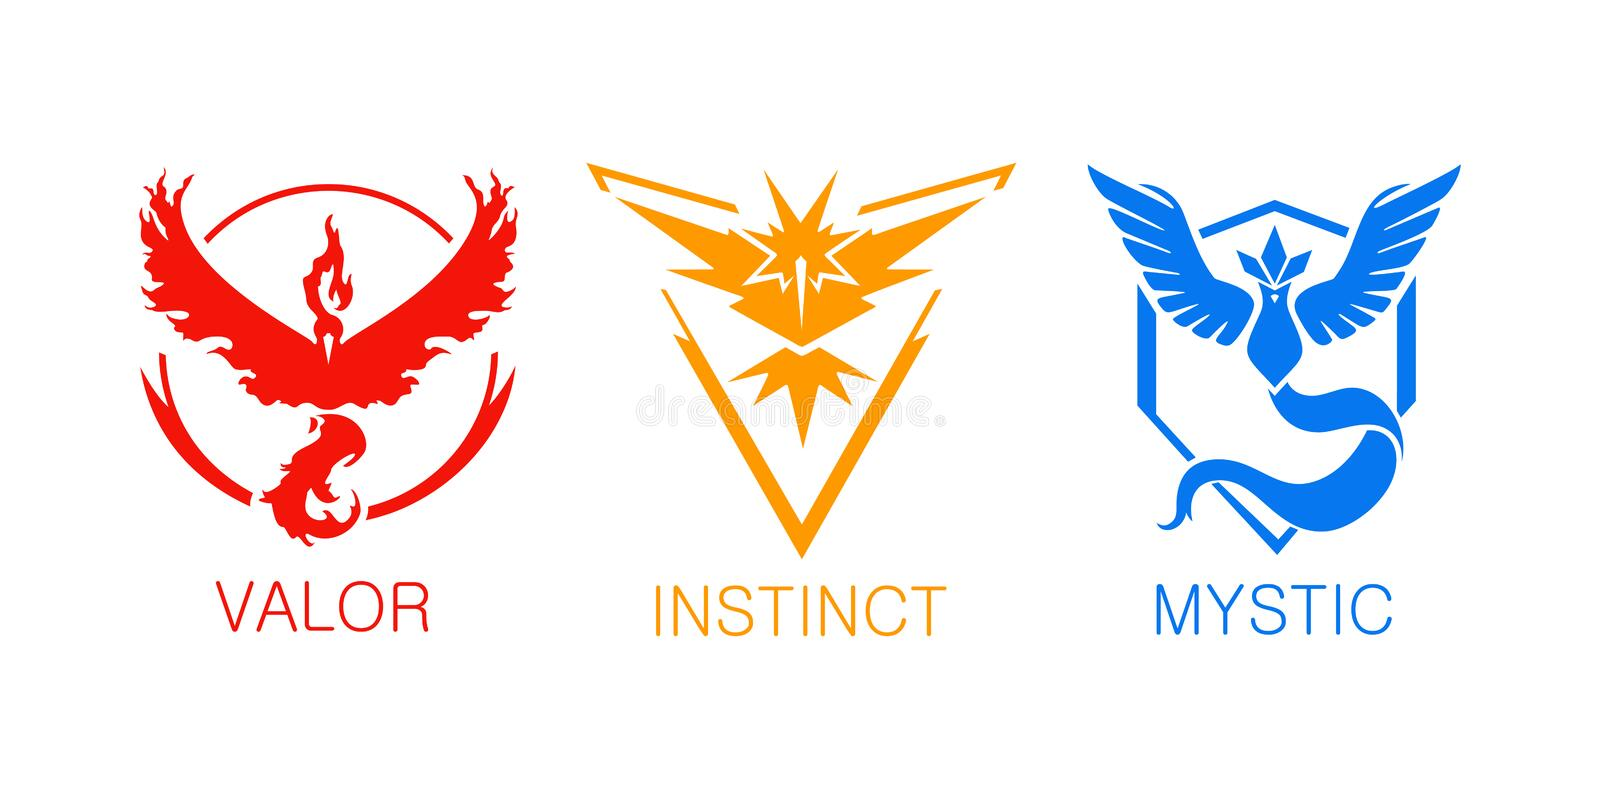 Pokemon go team icons from mobile phone game. Montevideo, Uruguay - September 6 2016: Color icon set of the teams from pokemon go on isolated background. Pokemon